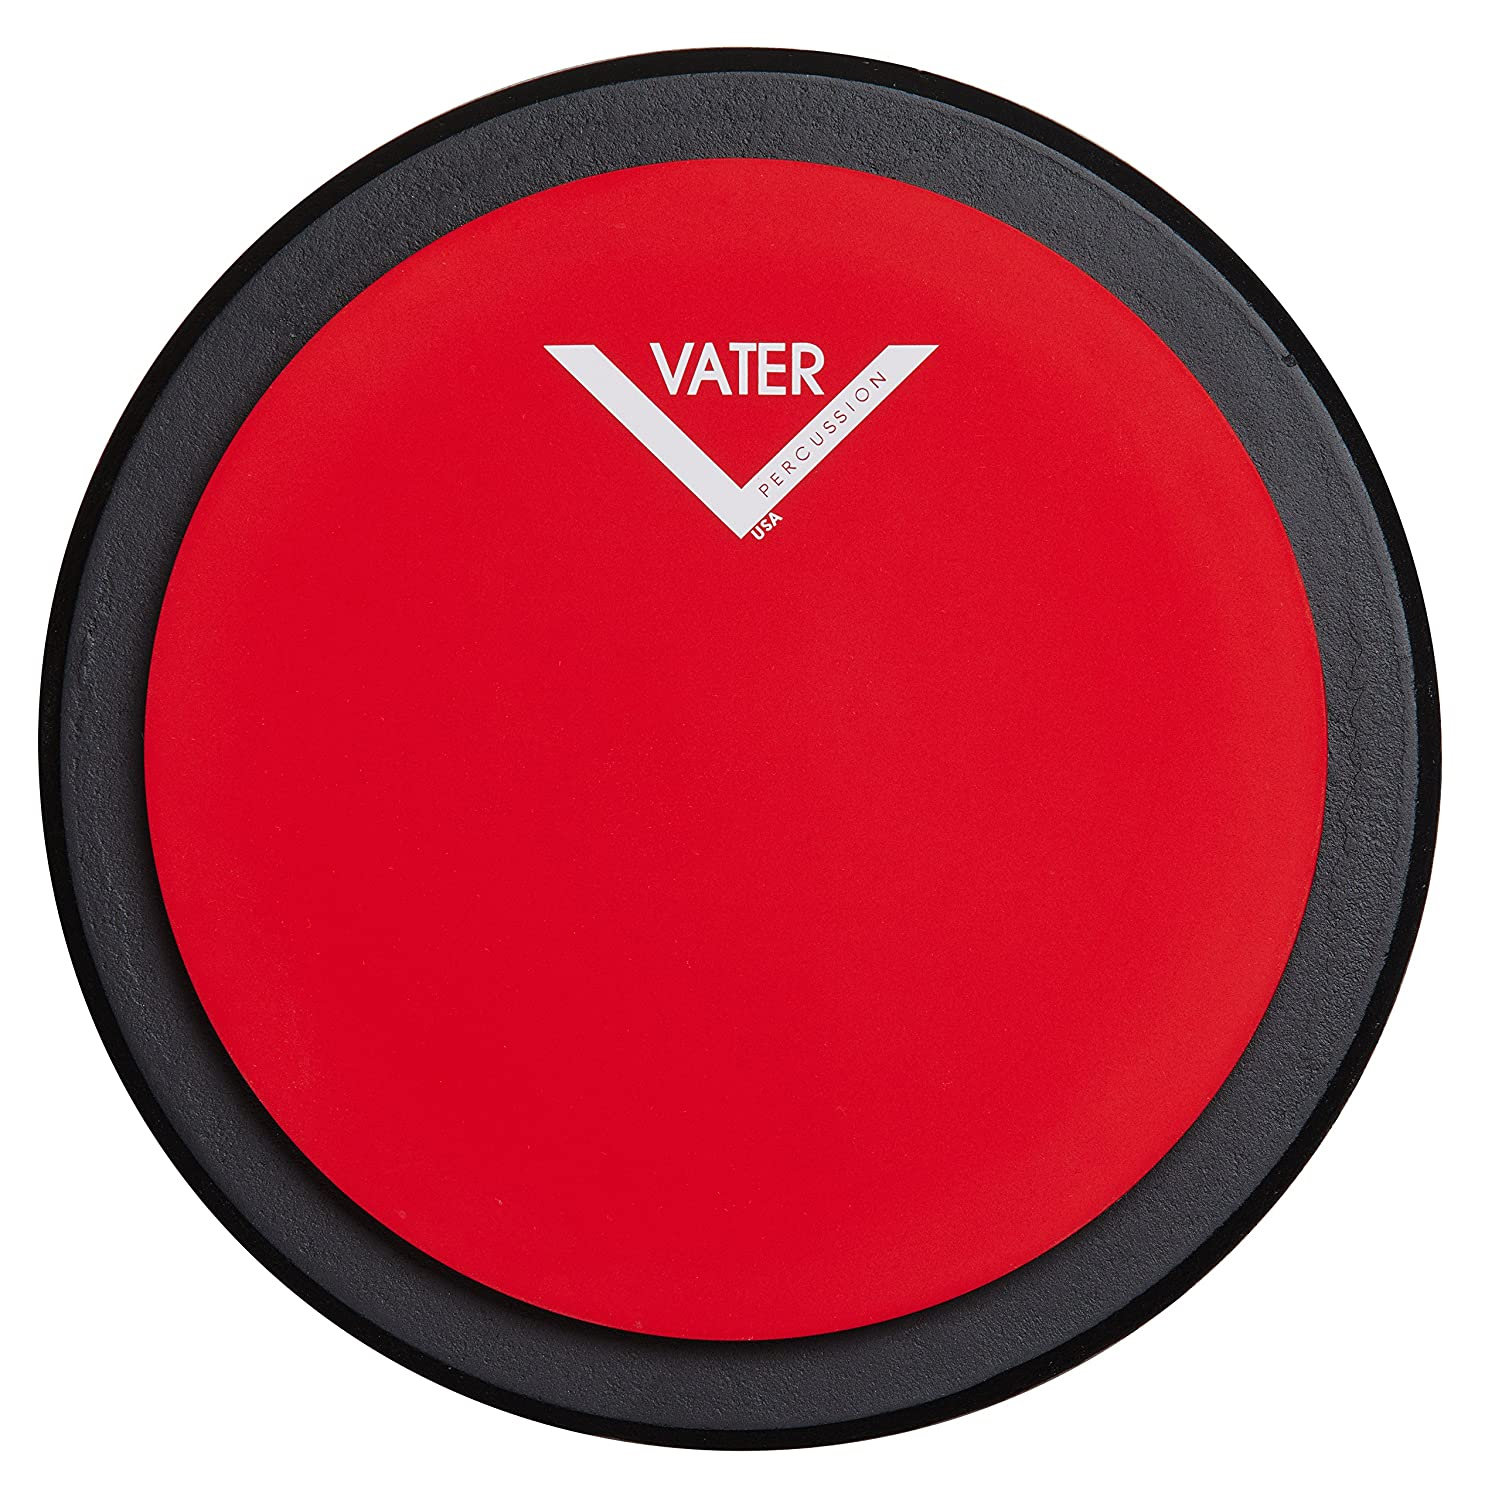 Vater VCB6S 6-Inch Single Sided Soft Chop Builder Pad